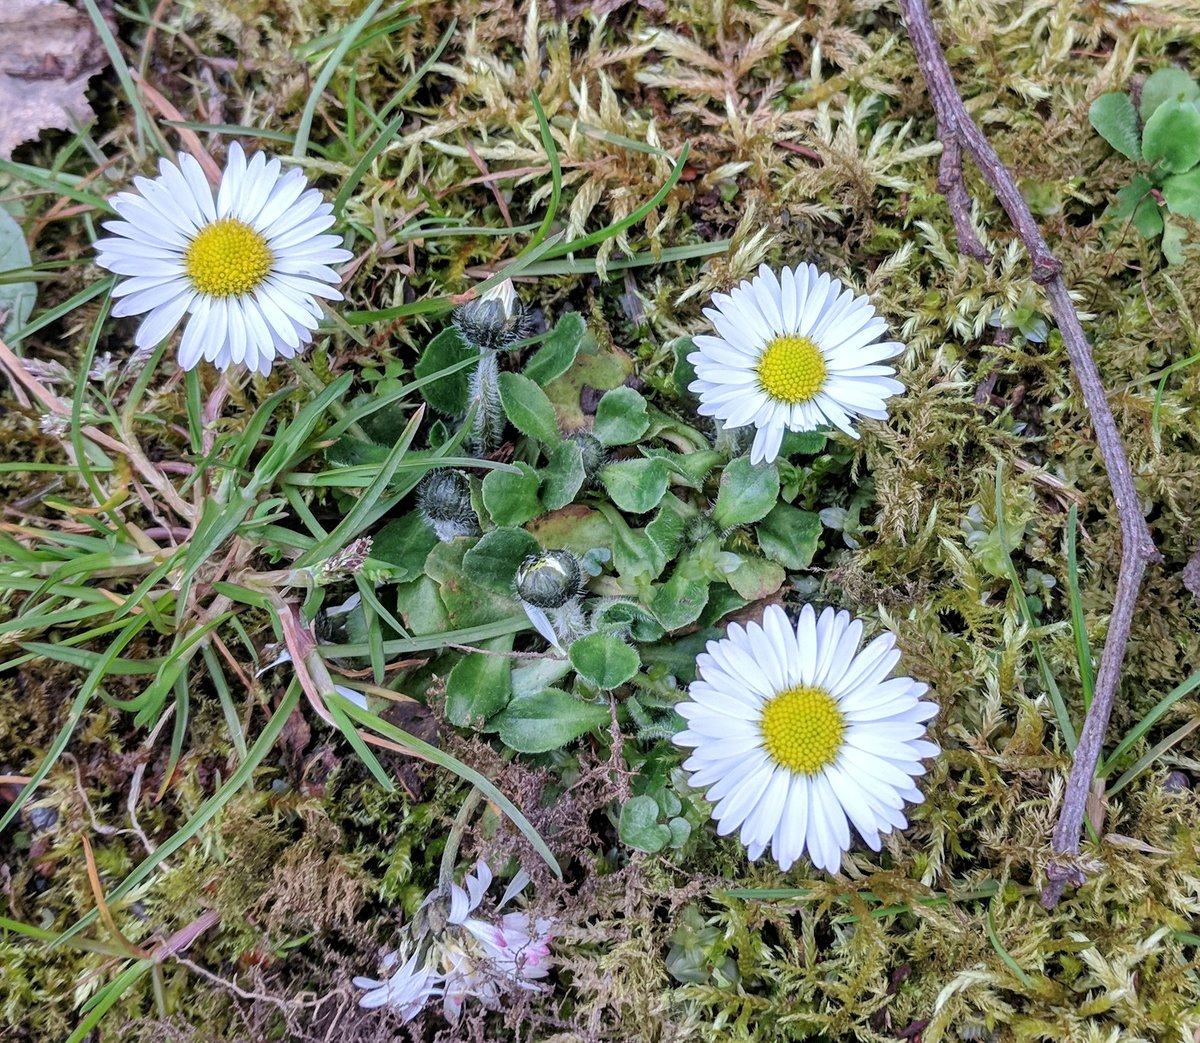 Plantlife scotland on twitter todays wildflower spotlight focuses thin white petals surrounding a bright yellow centre kicking up the daisies is to describe those who have given up gardening mightylinksfo